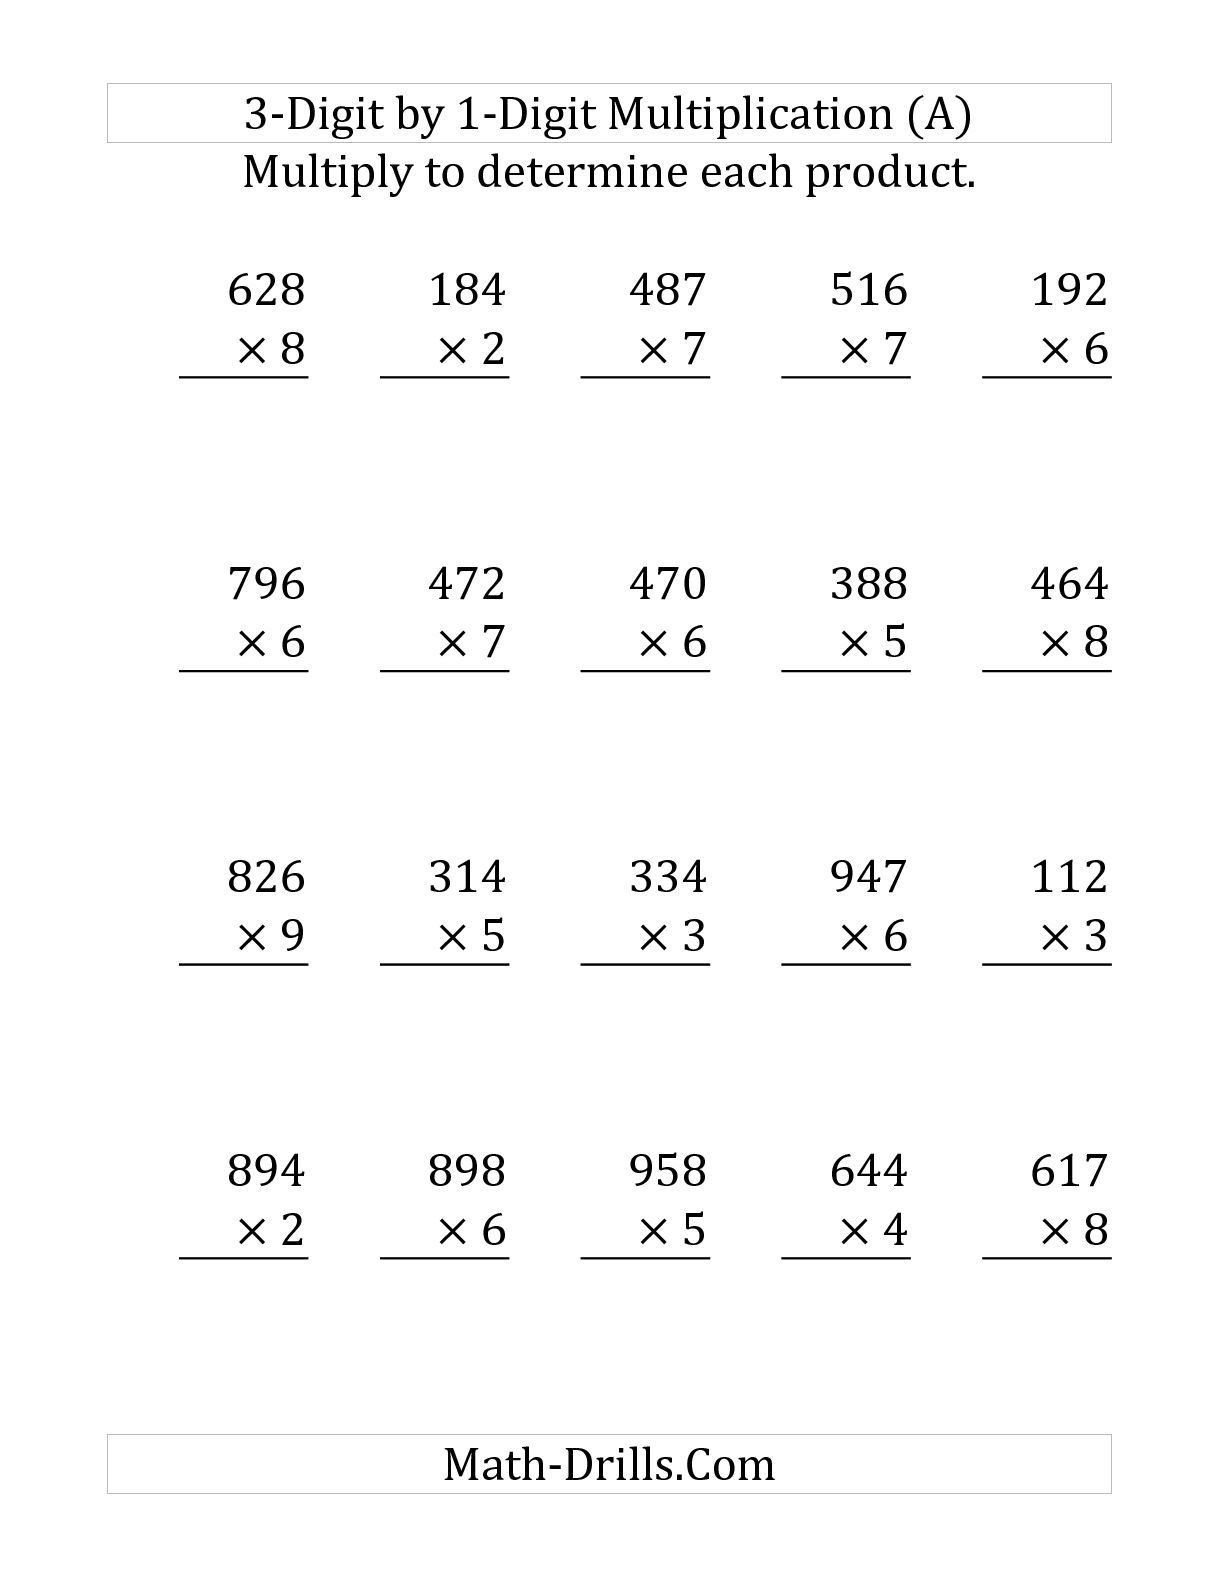 Commas Worksheet 4th Grade the Multiplying A 3 Digit Number by A 1 Digit Number